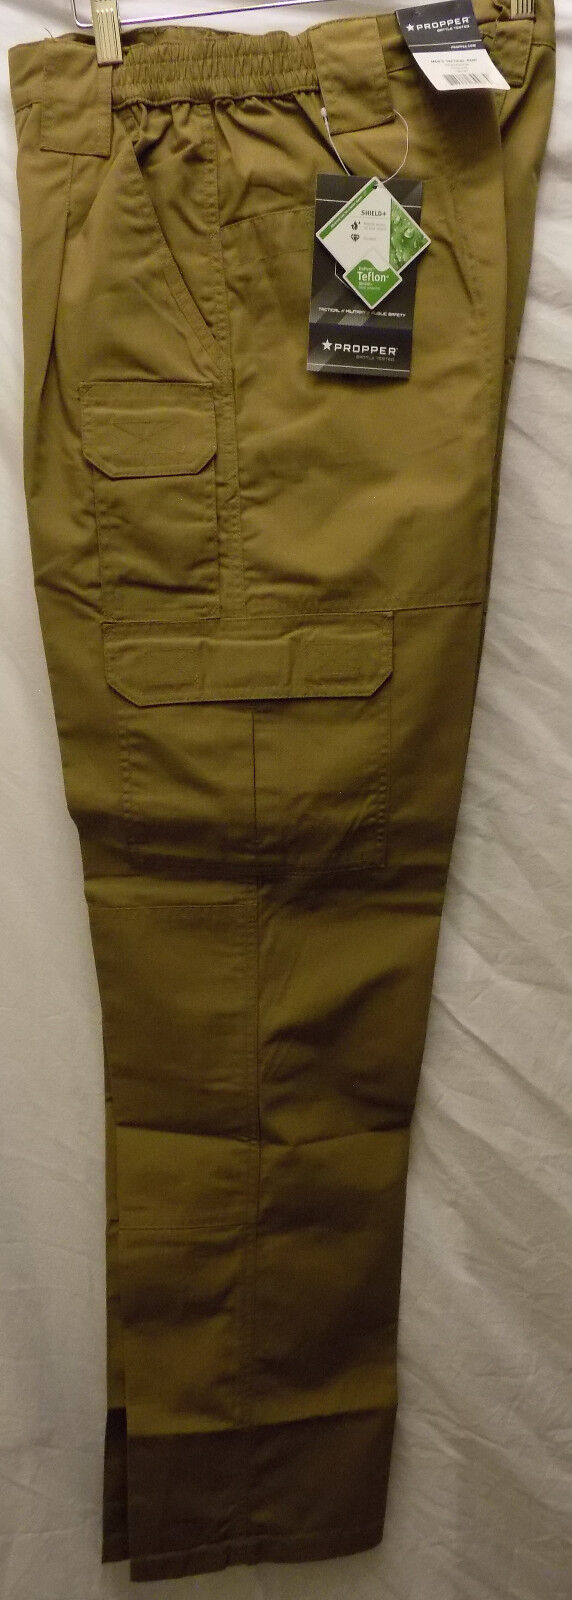 New Mens 30 x 36 Coyote Propper Men's Tactical Pants NO BELT Ripstop Teflon